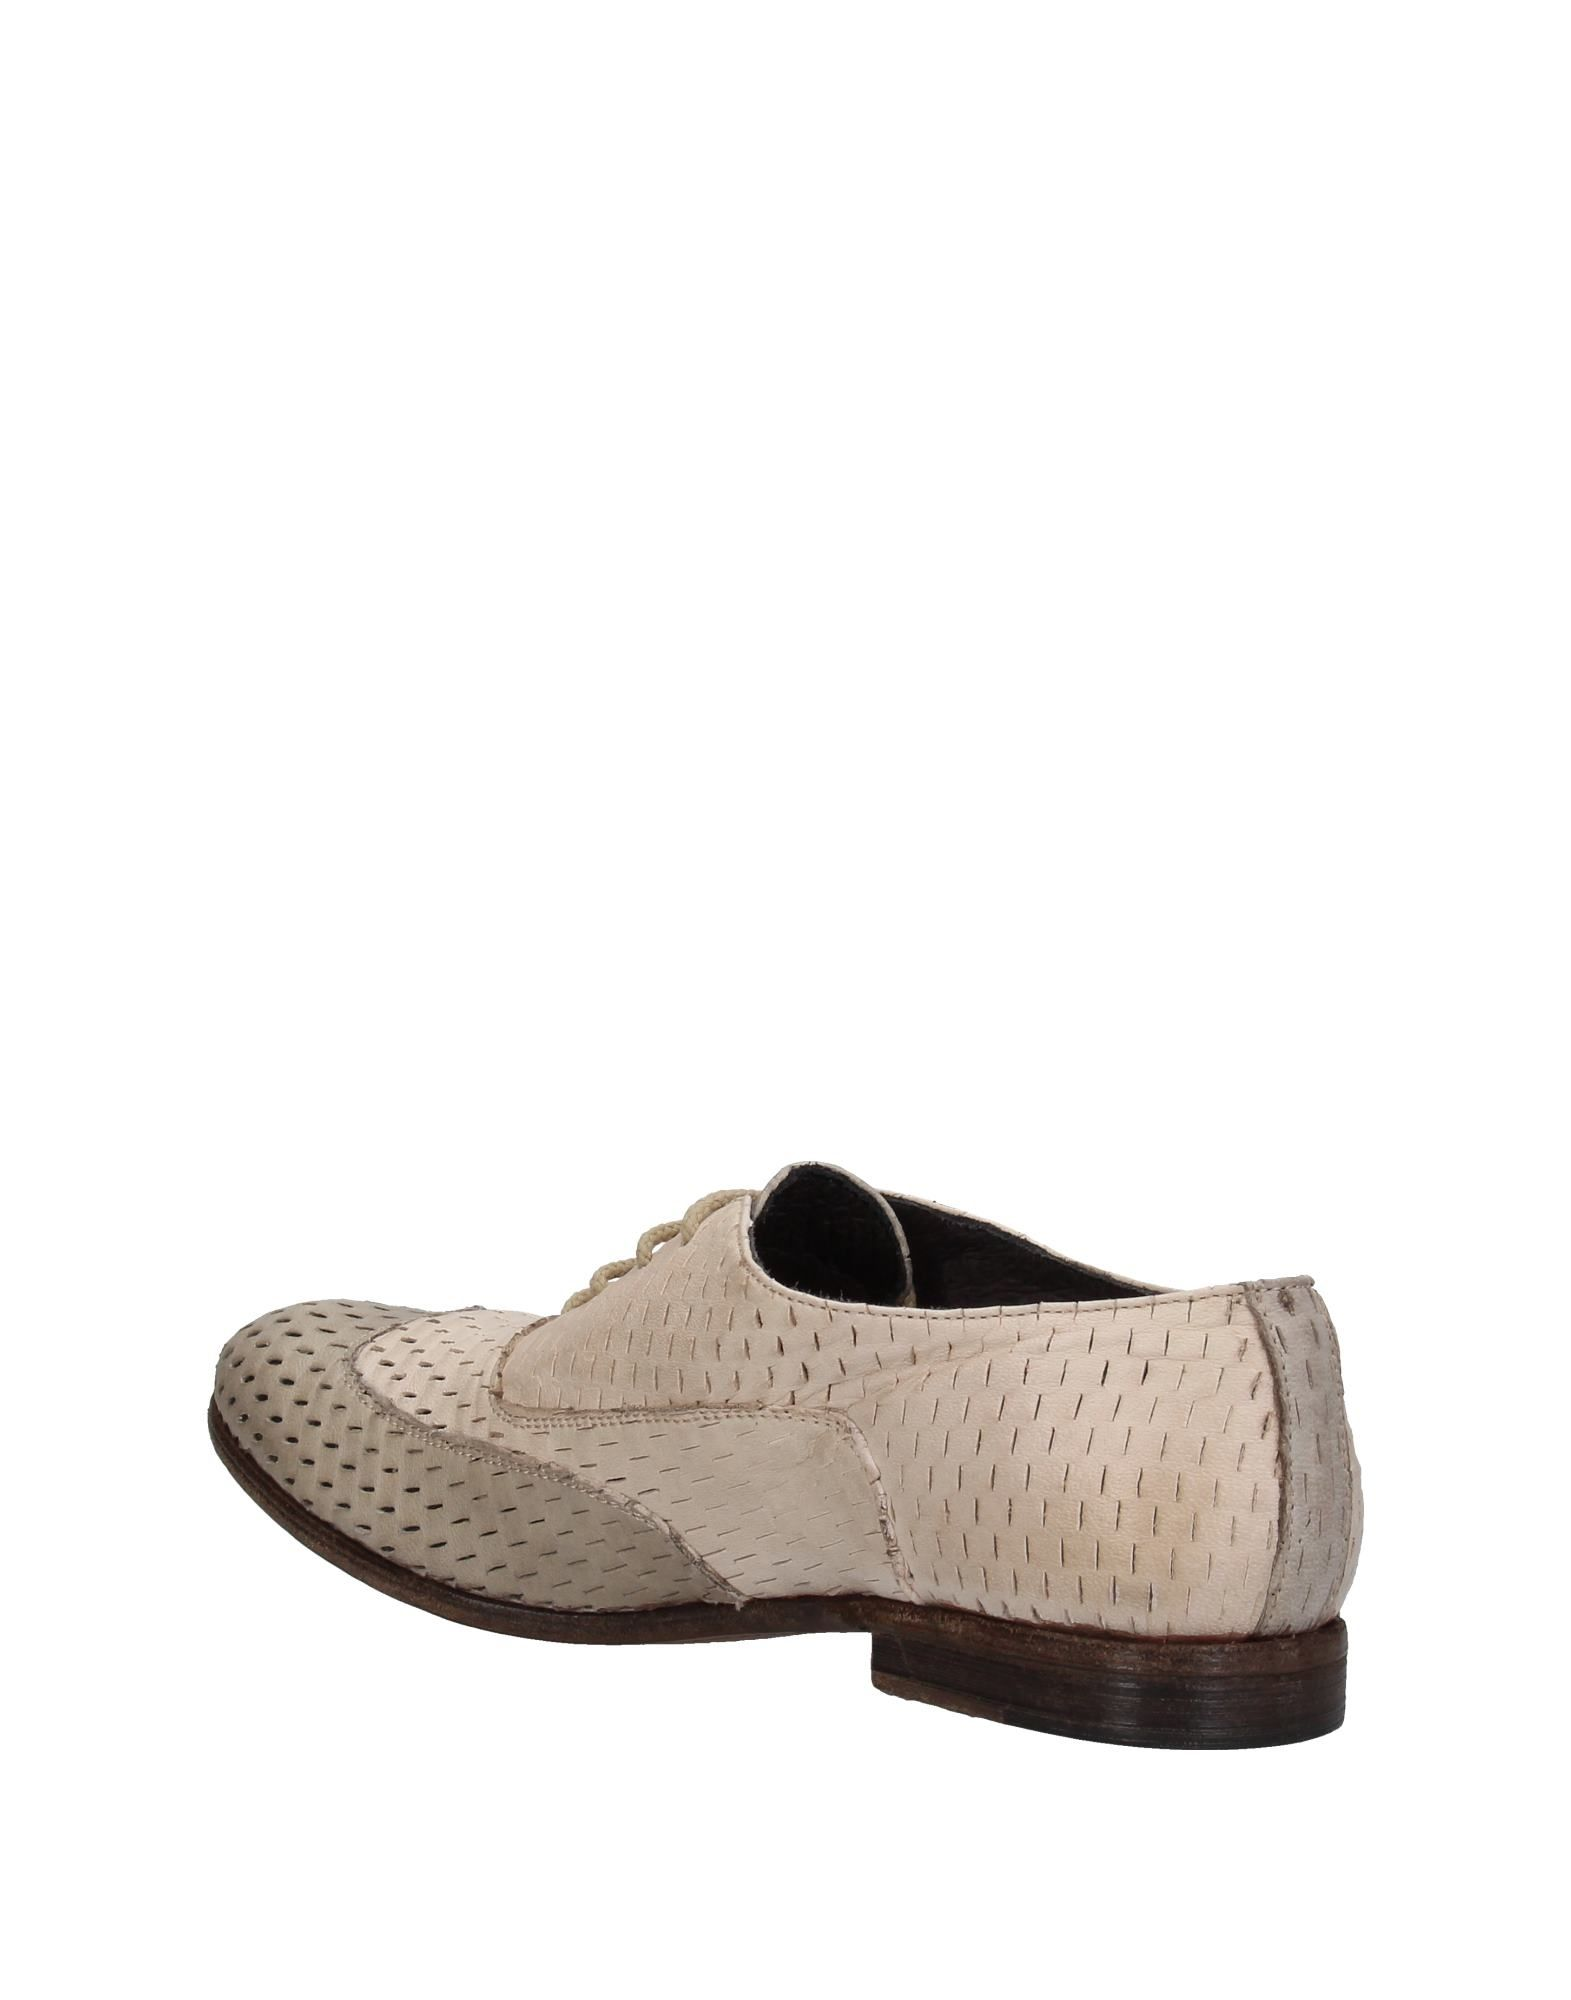 CHAUSSURES - SandalesMaurice Abot 92QNG1Zz85